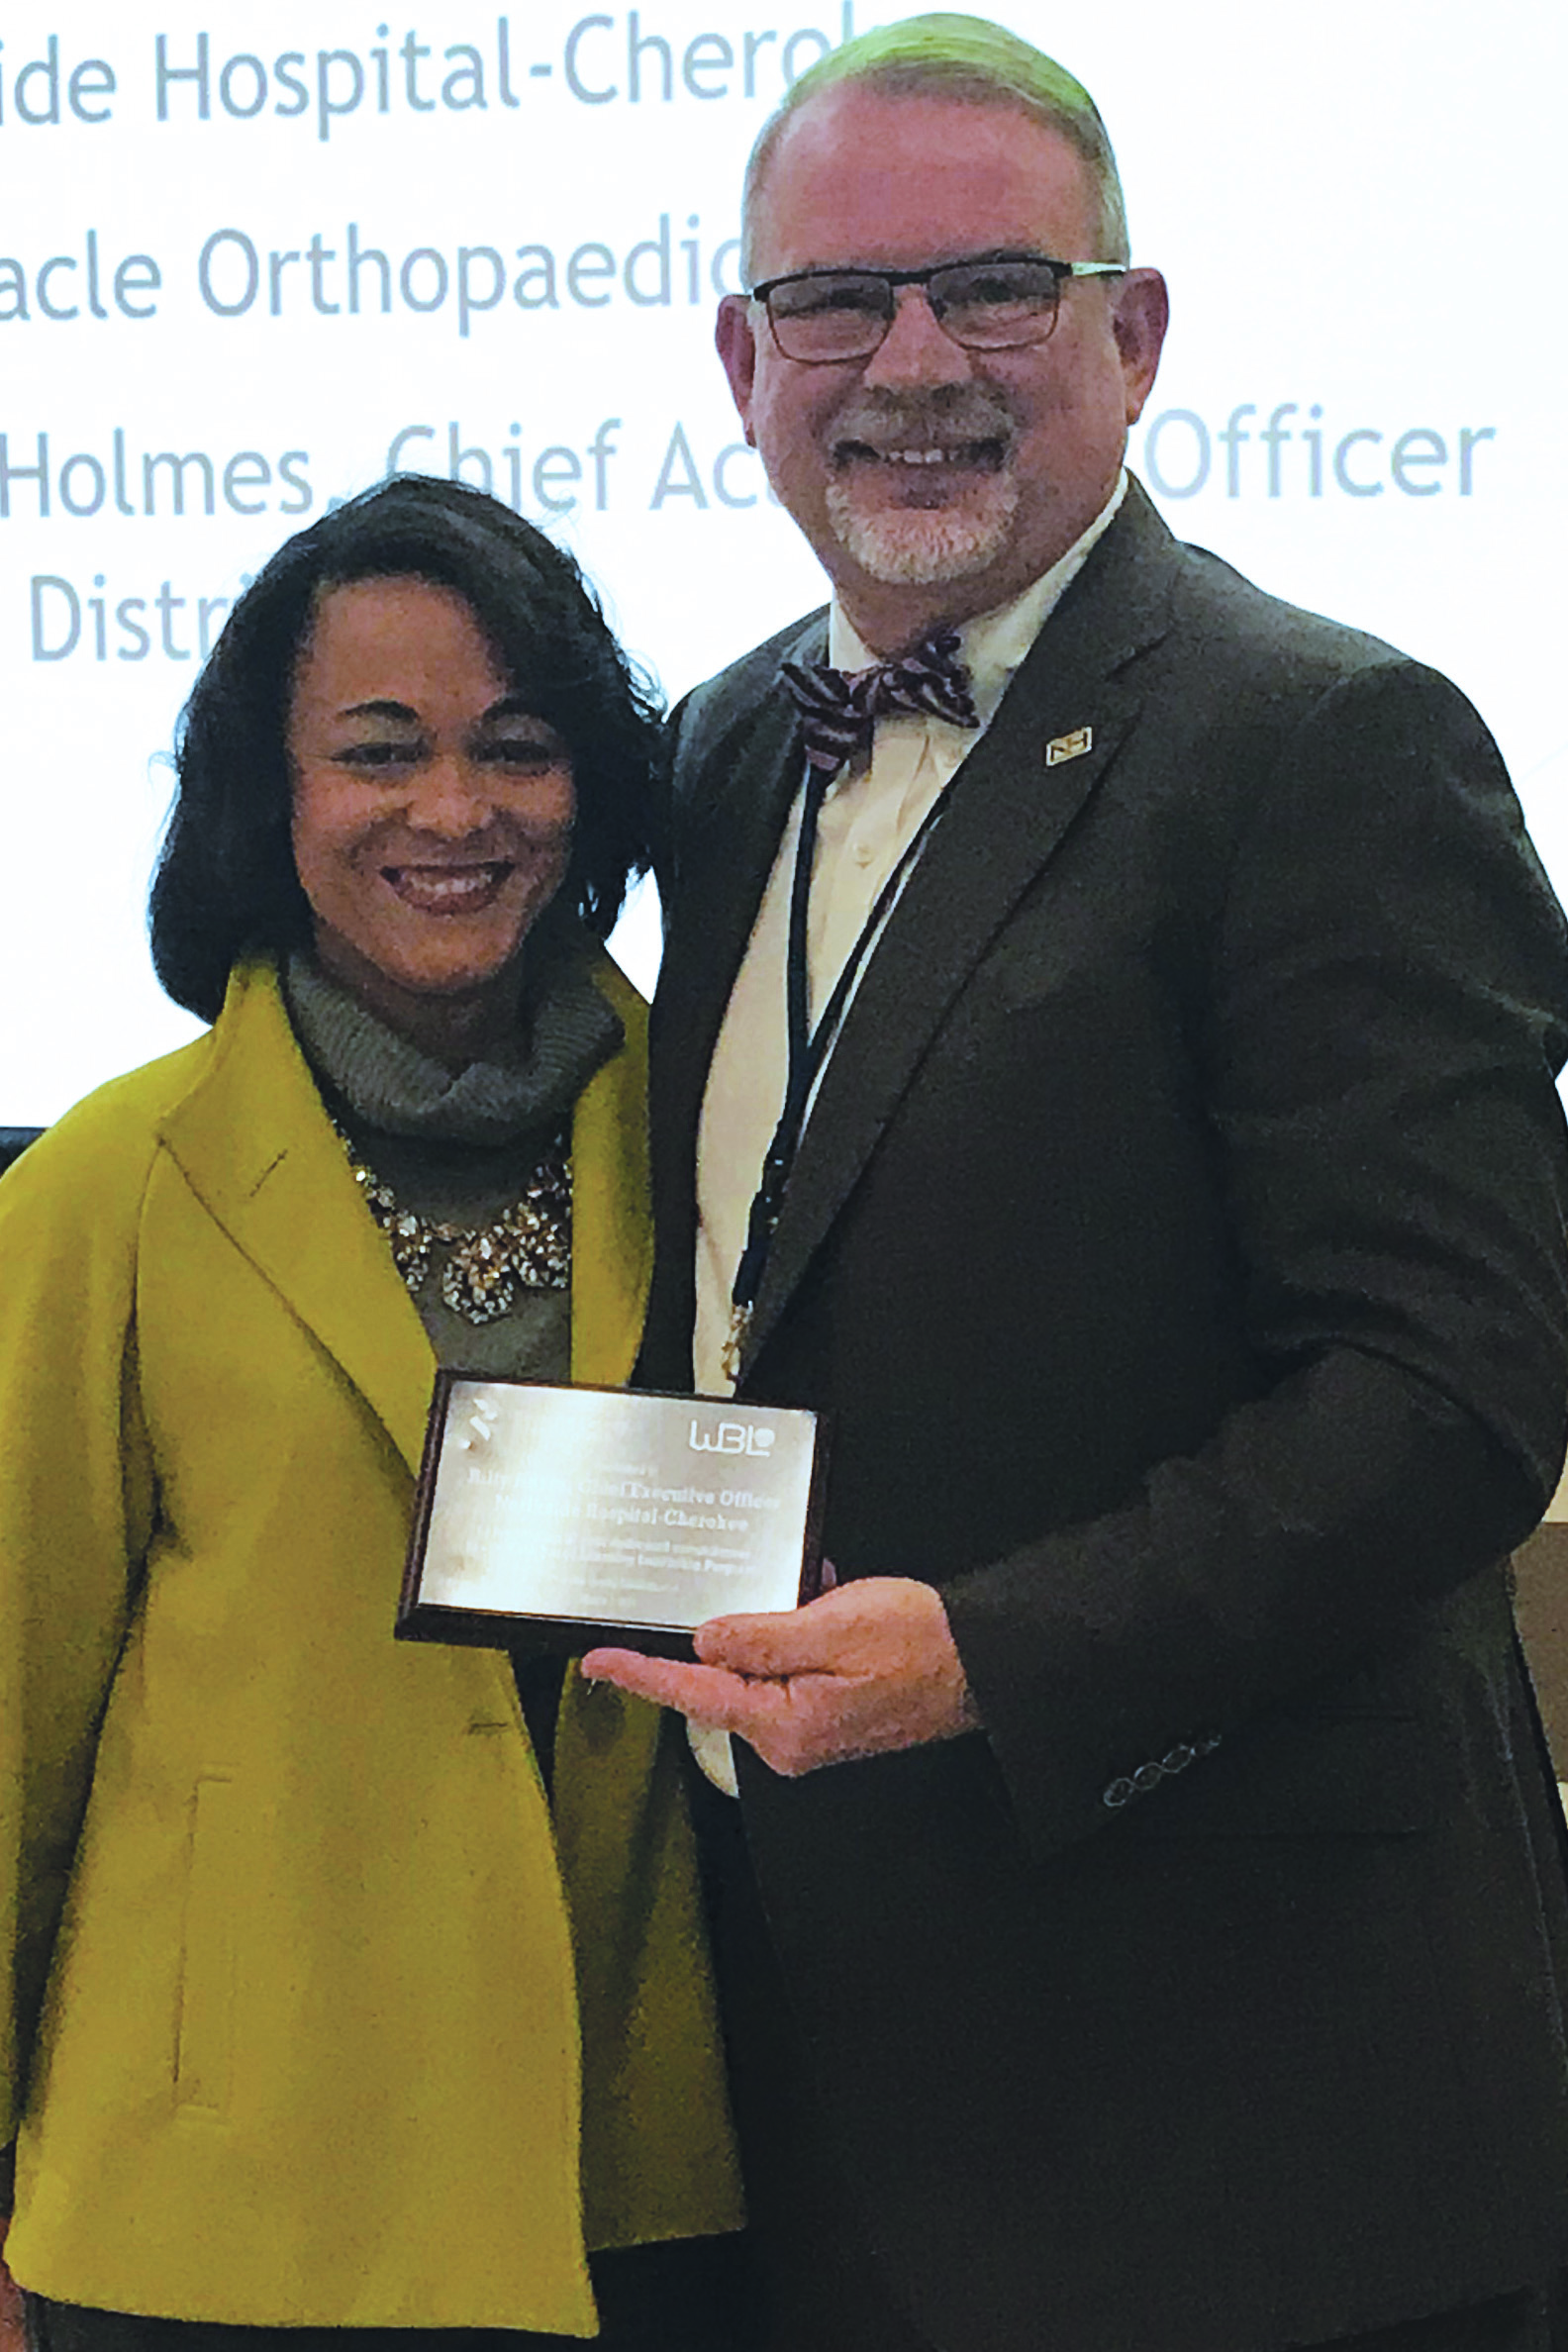 CCSD Chief Academic Officer Dr. Nicole Holmes presents an award of appreciation to Northside Hospital Cherokee CEO Billy Hayes